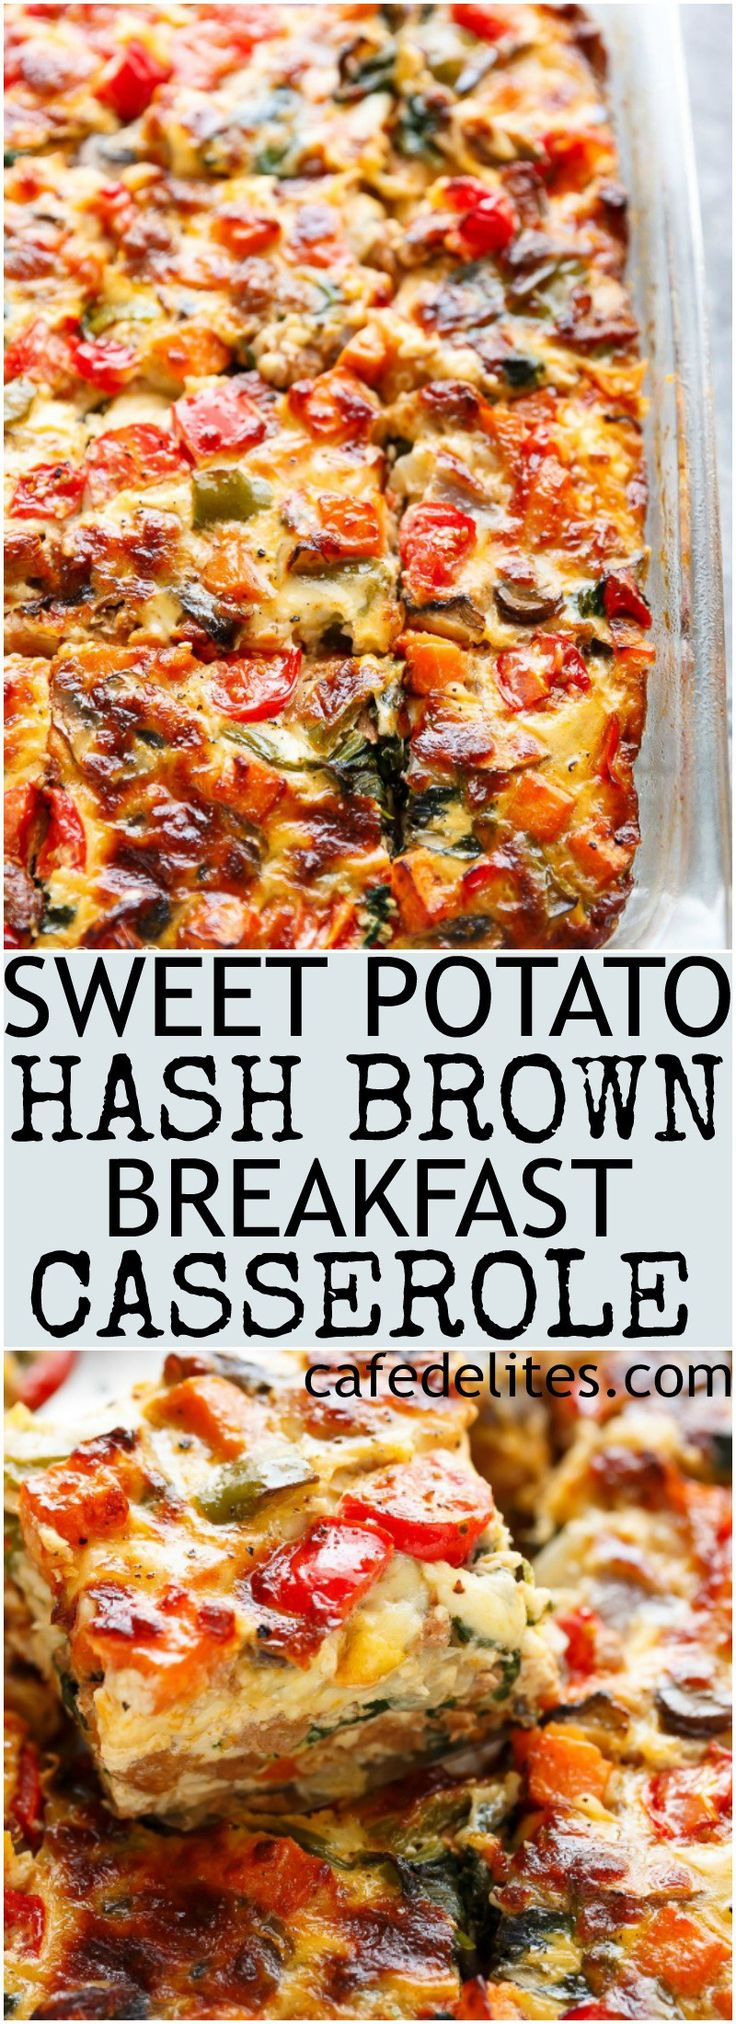 An easy and heathy LOADED Sweet Potato Hash Brown Breakfast Casserole, complete with as many vegetables as YOU want, crumbled sausages, eggs and crisp-tender sweet potato hash browns! | http://cafedelites.com